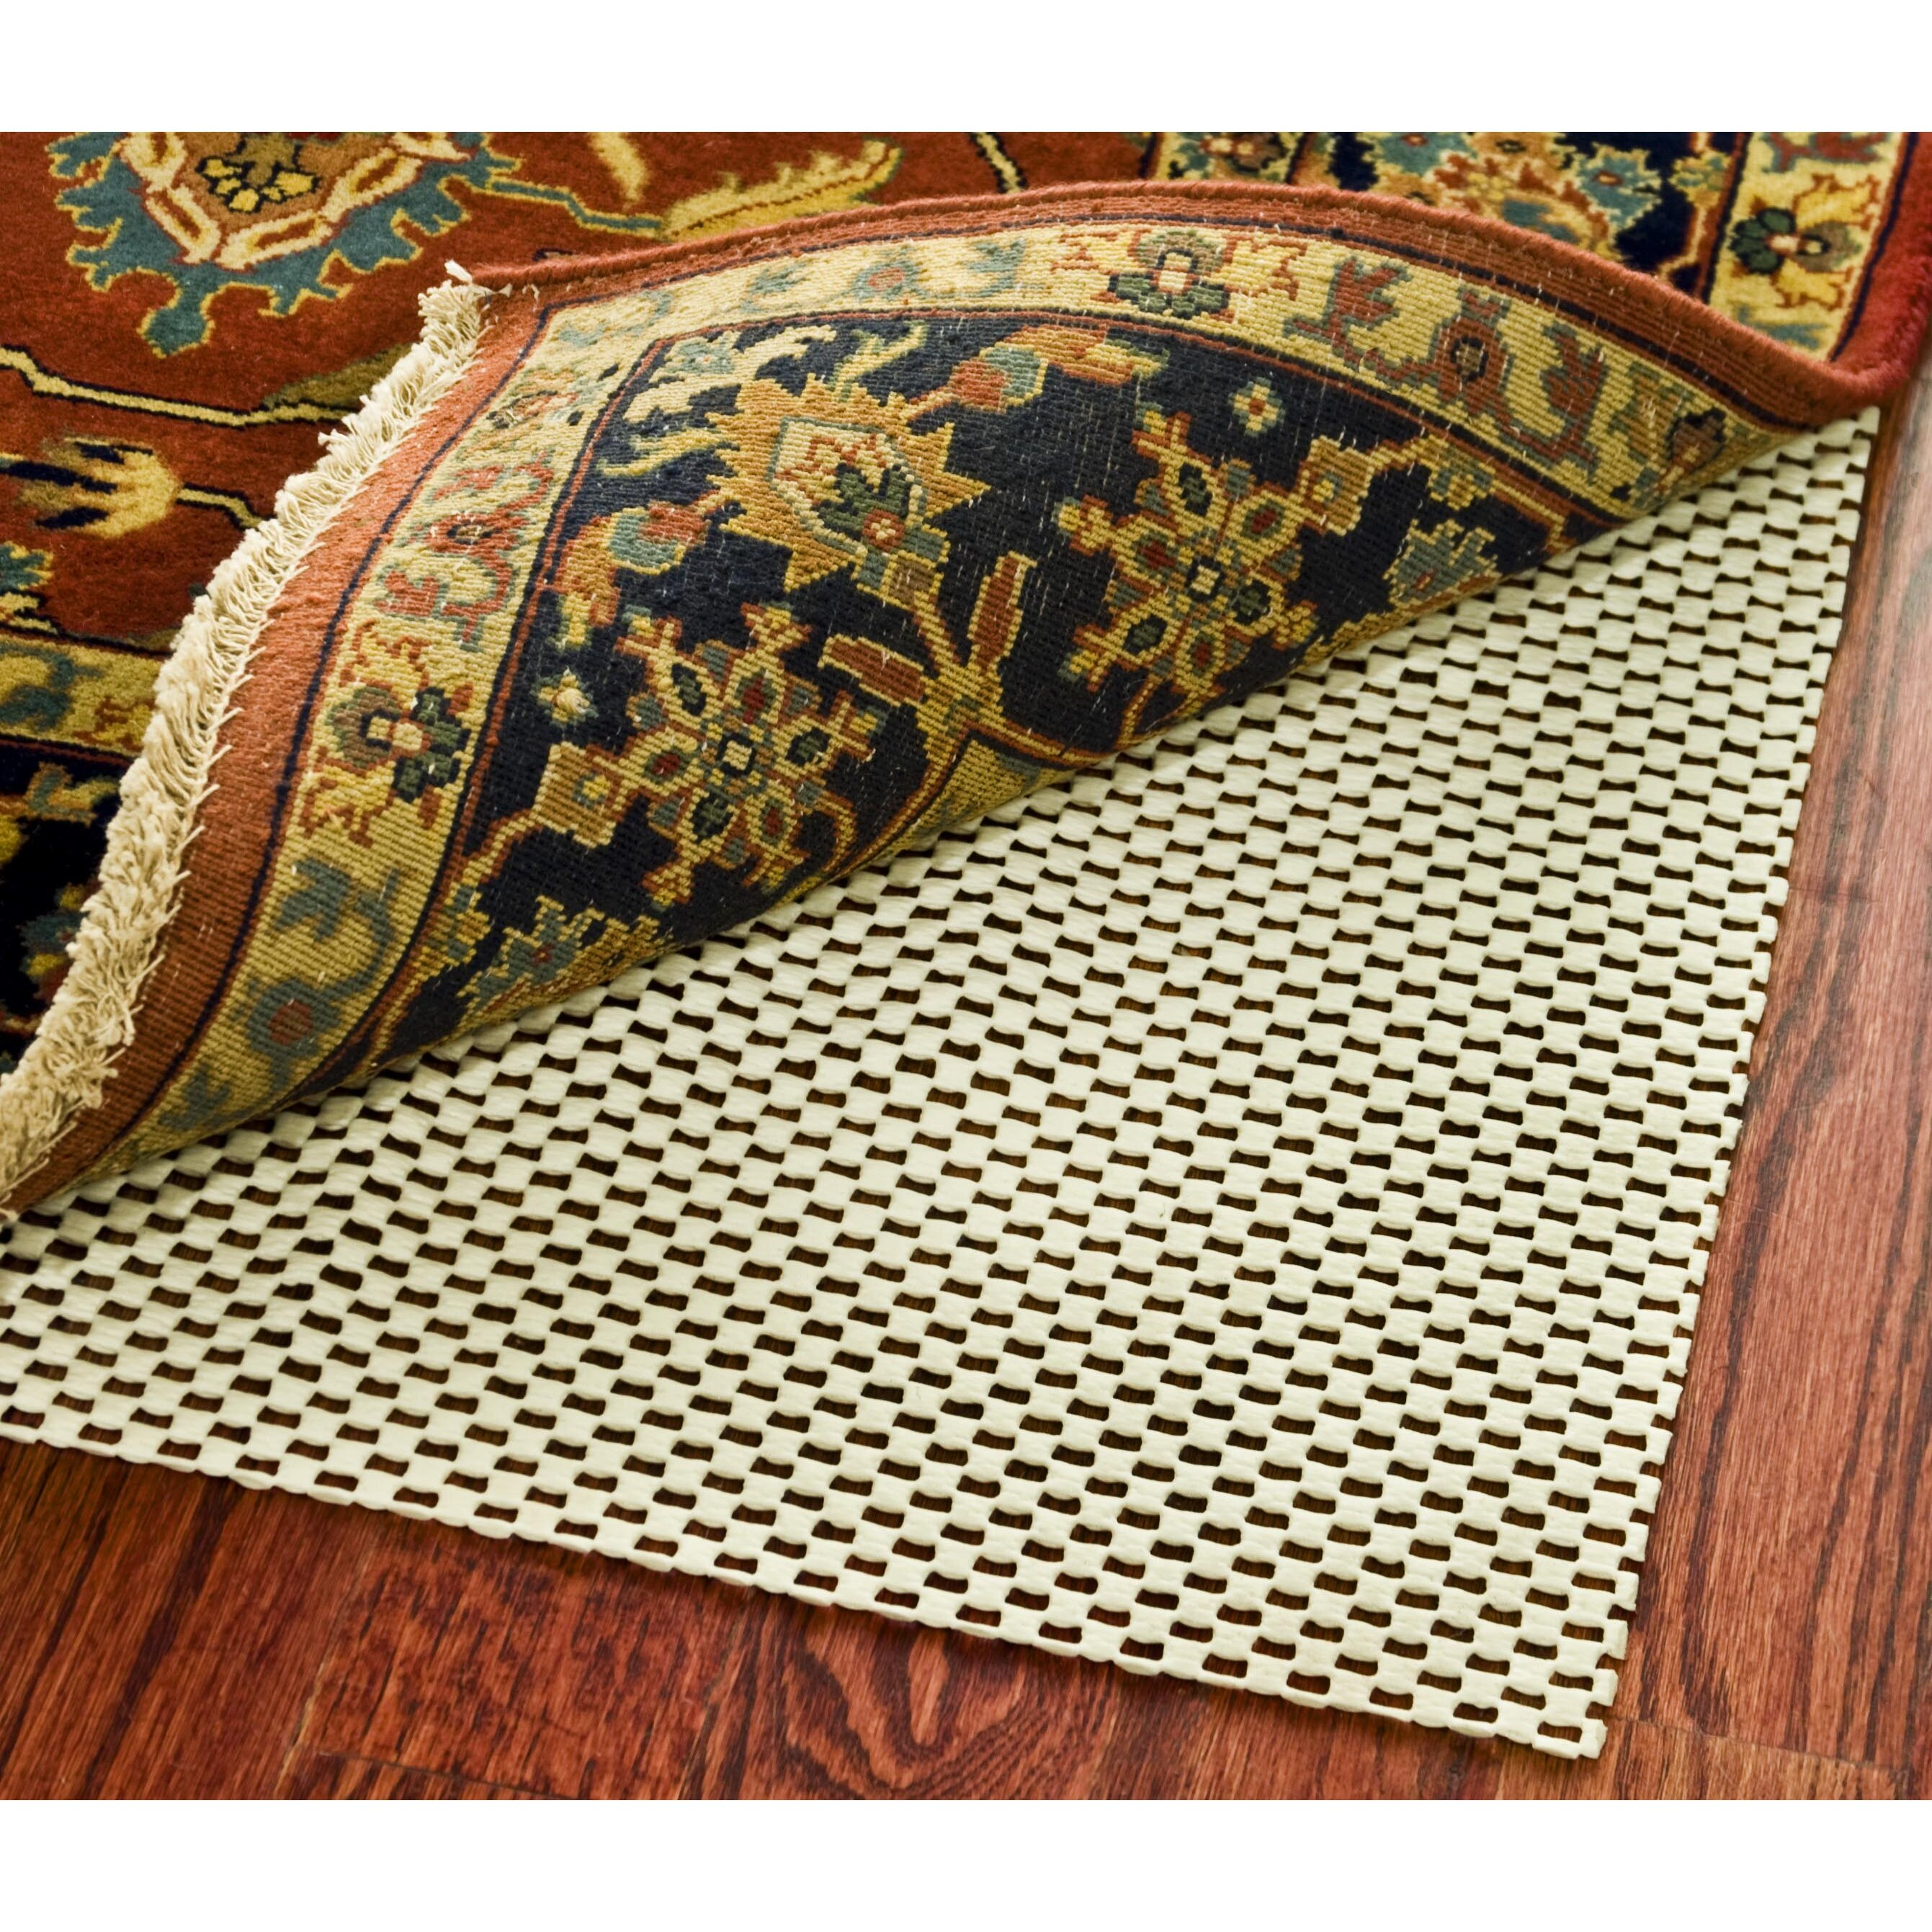 Rooster Tapestry Non Skid Rug: Darby Home Co Non-Slip Area Rug Pad & Reviews